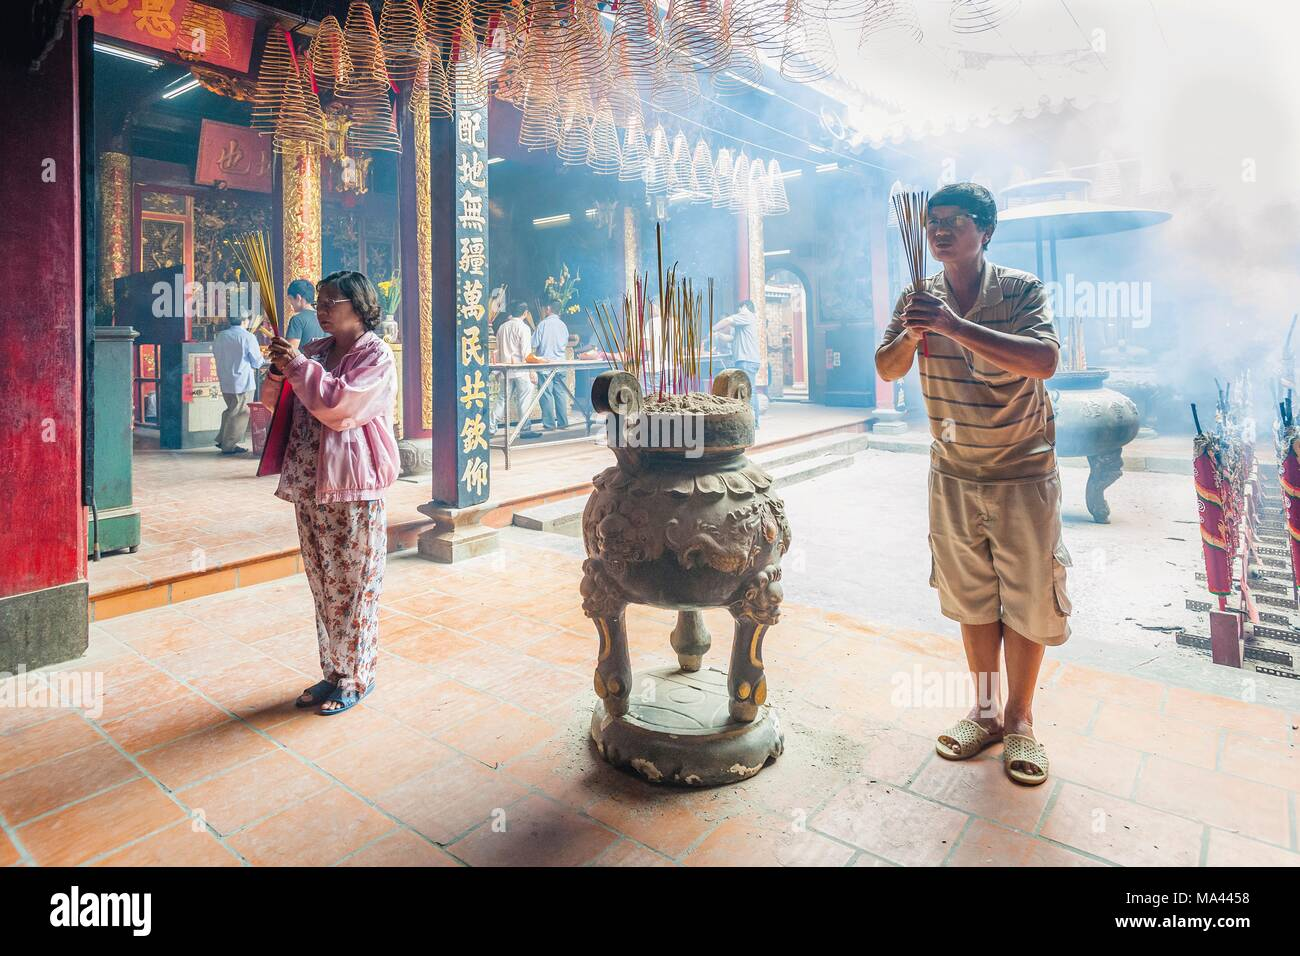 The Nhi Phu Temple in Cho Lon, Ho Chi Minh City, Vietnam - Stock Image